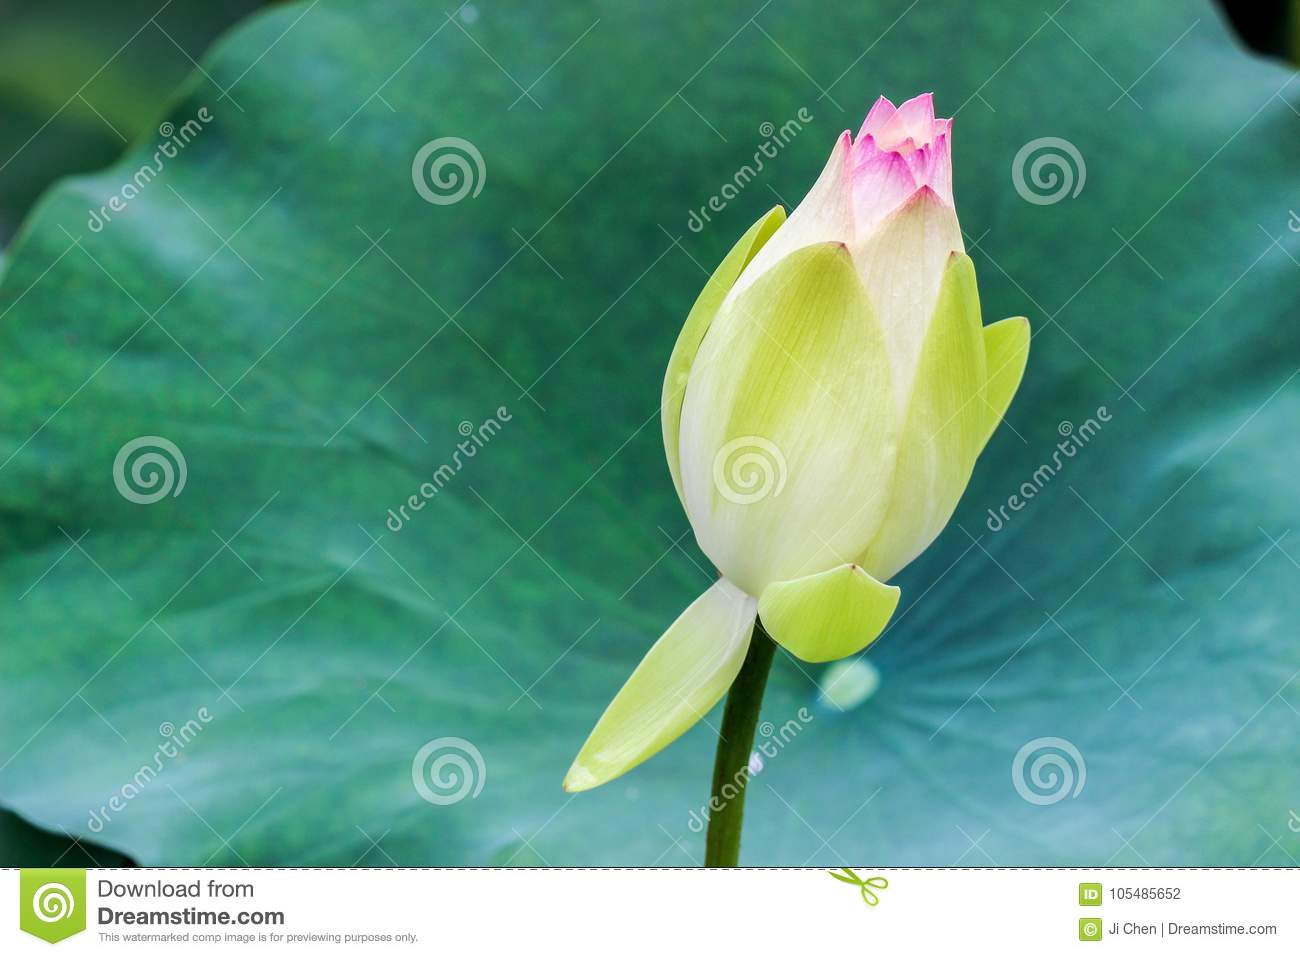 Close up of lotus flower bud with green leaves stock photo image download close up of lotus flower bud with green leaves stock photo image of season izmirmasajfo